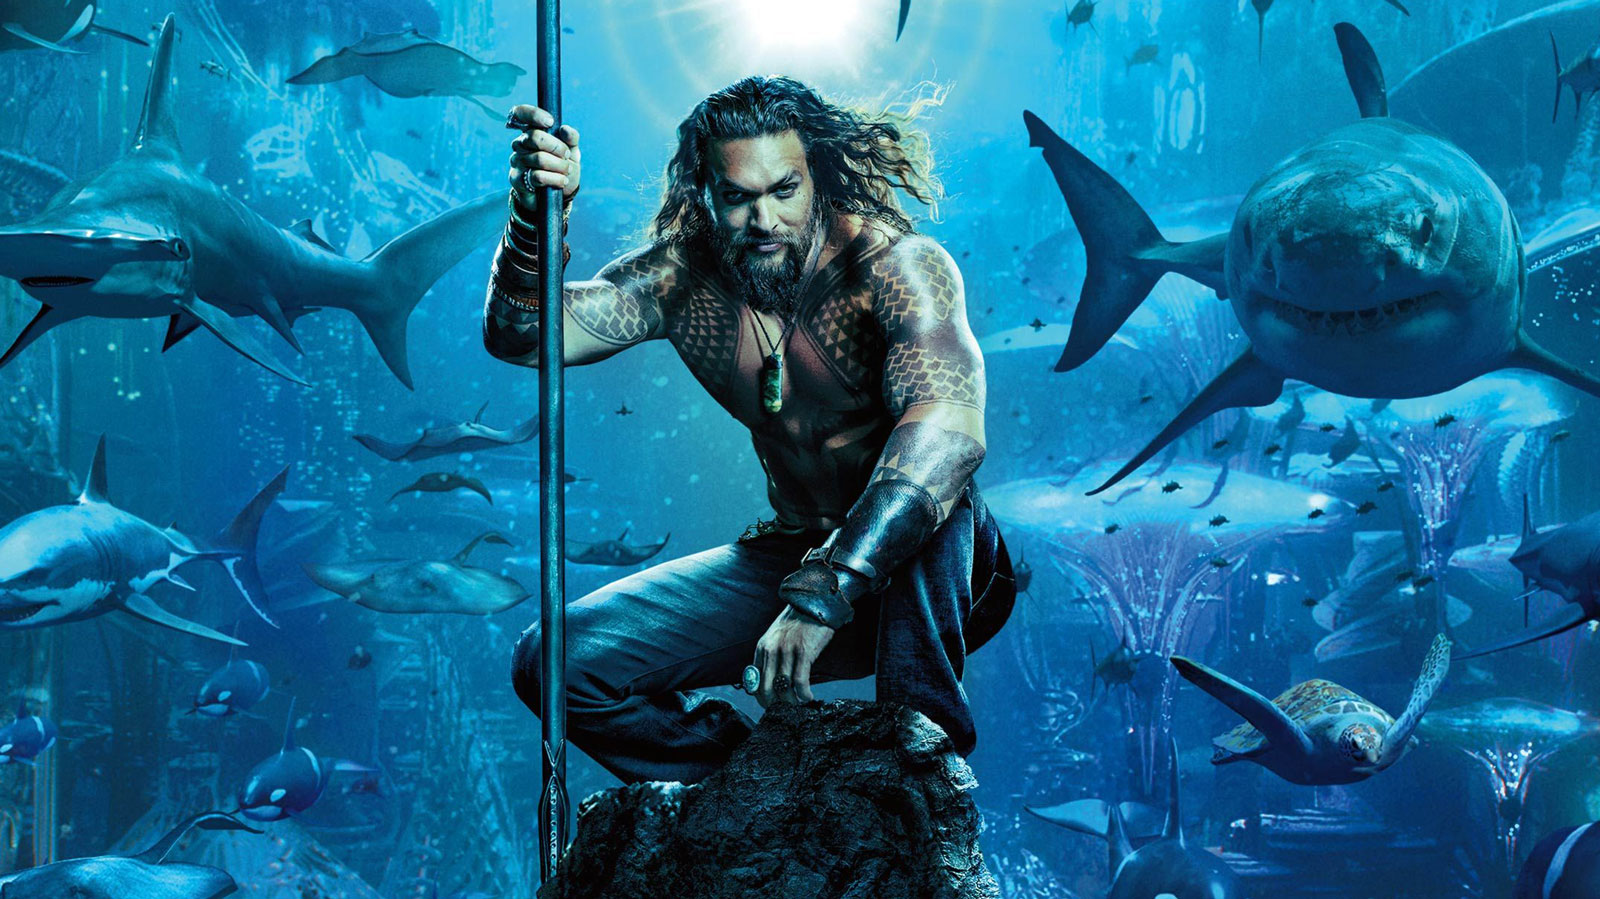 Watch the First 'Aquaman' Trailer Starring Hunky Jason Momoa